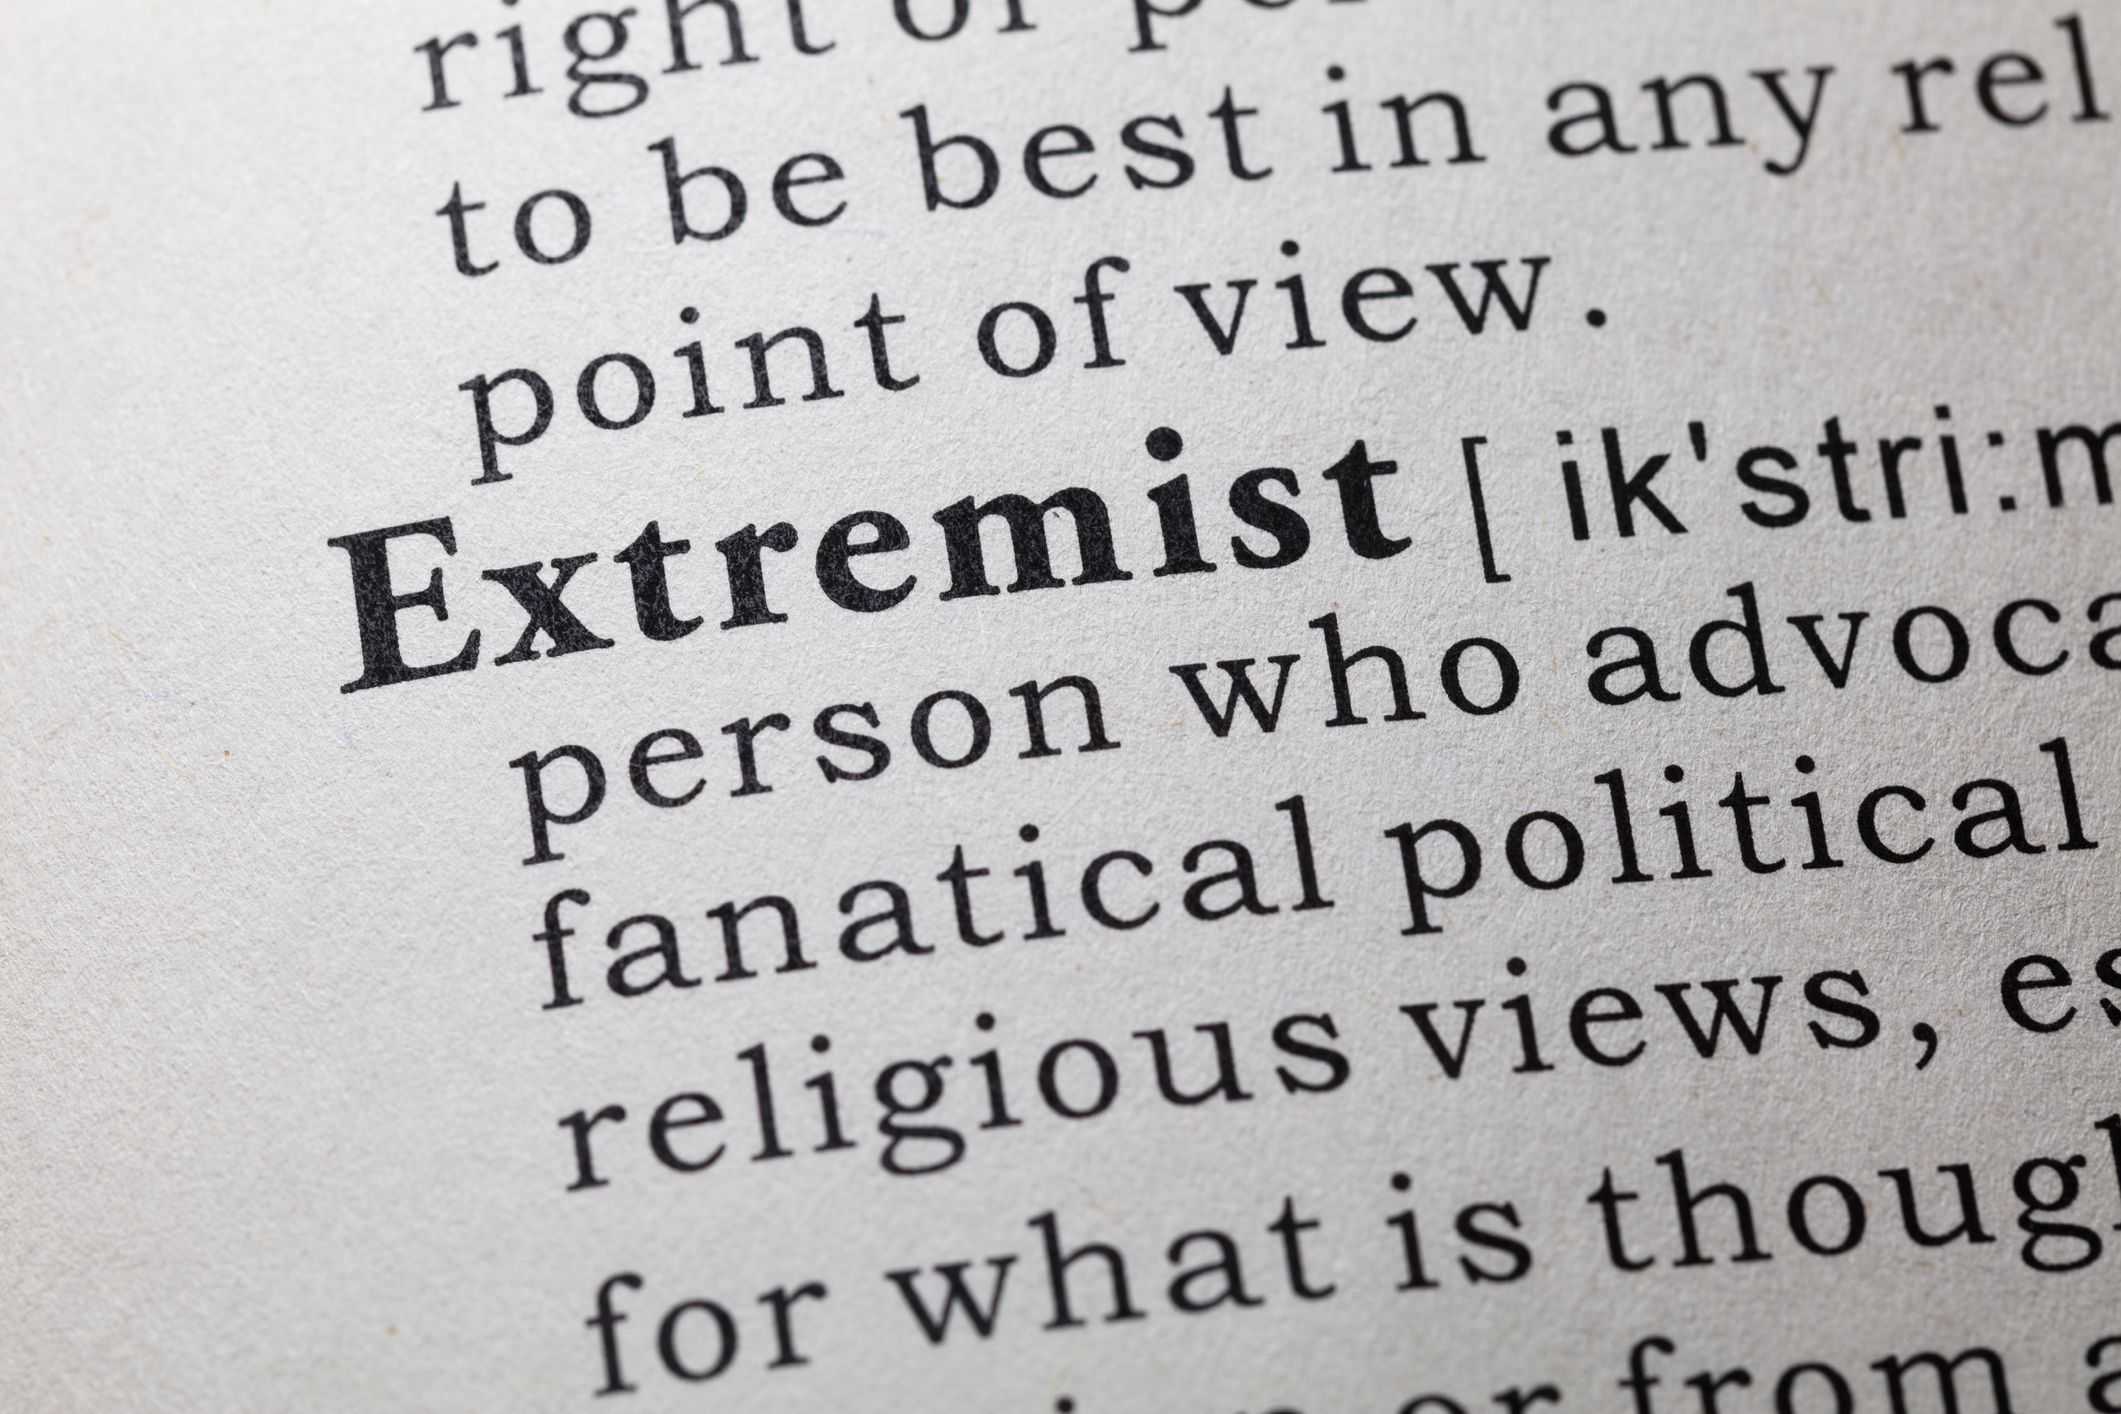 Fake Dictionary, Dictionary definition of the word Extremist. Image credit: iStock